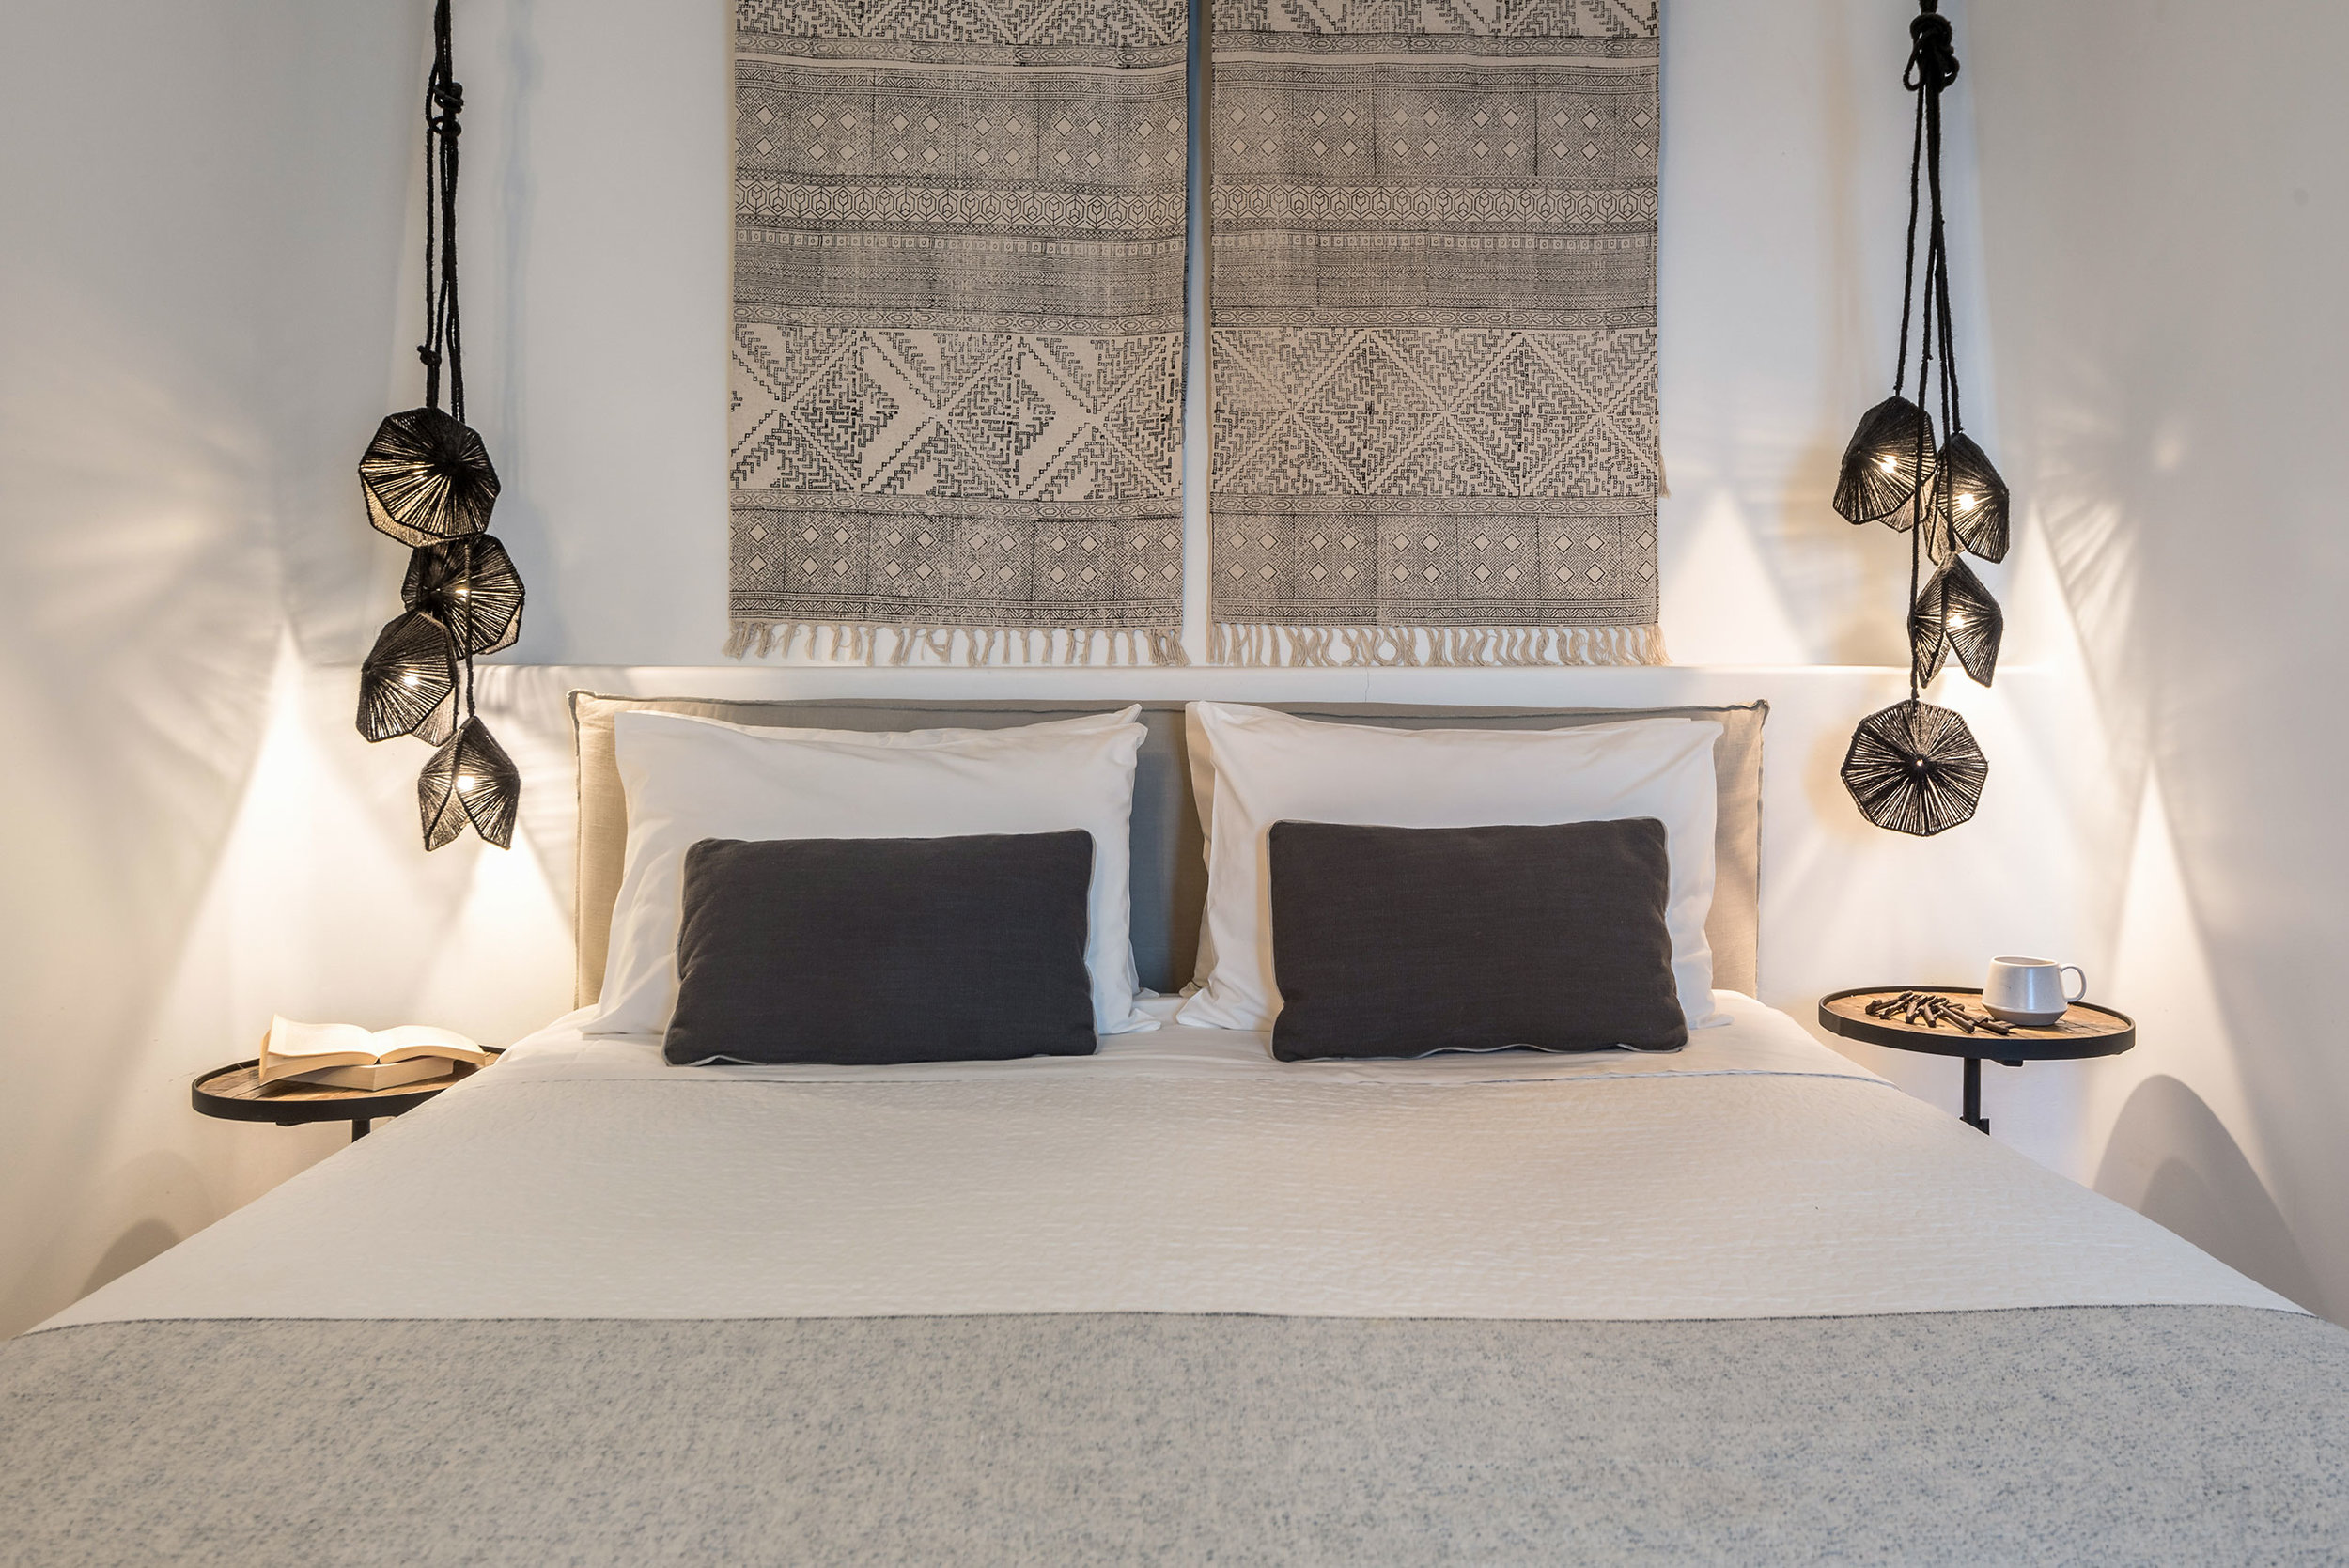 Greek island style bedroom with ethnic and modern details.